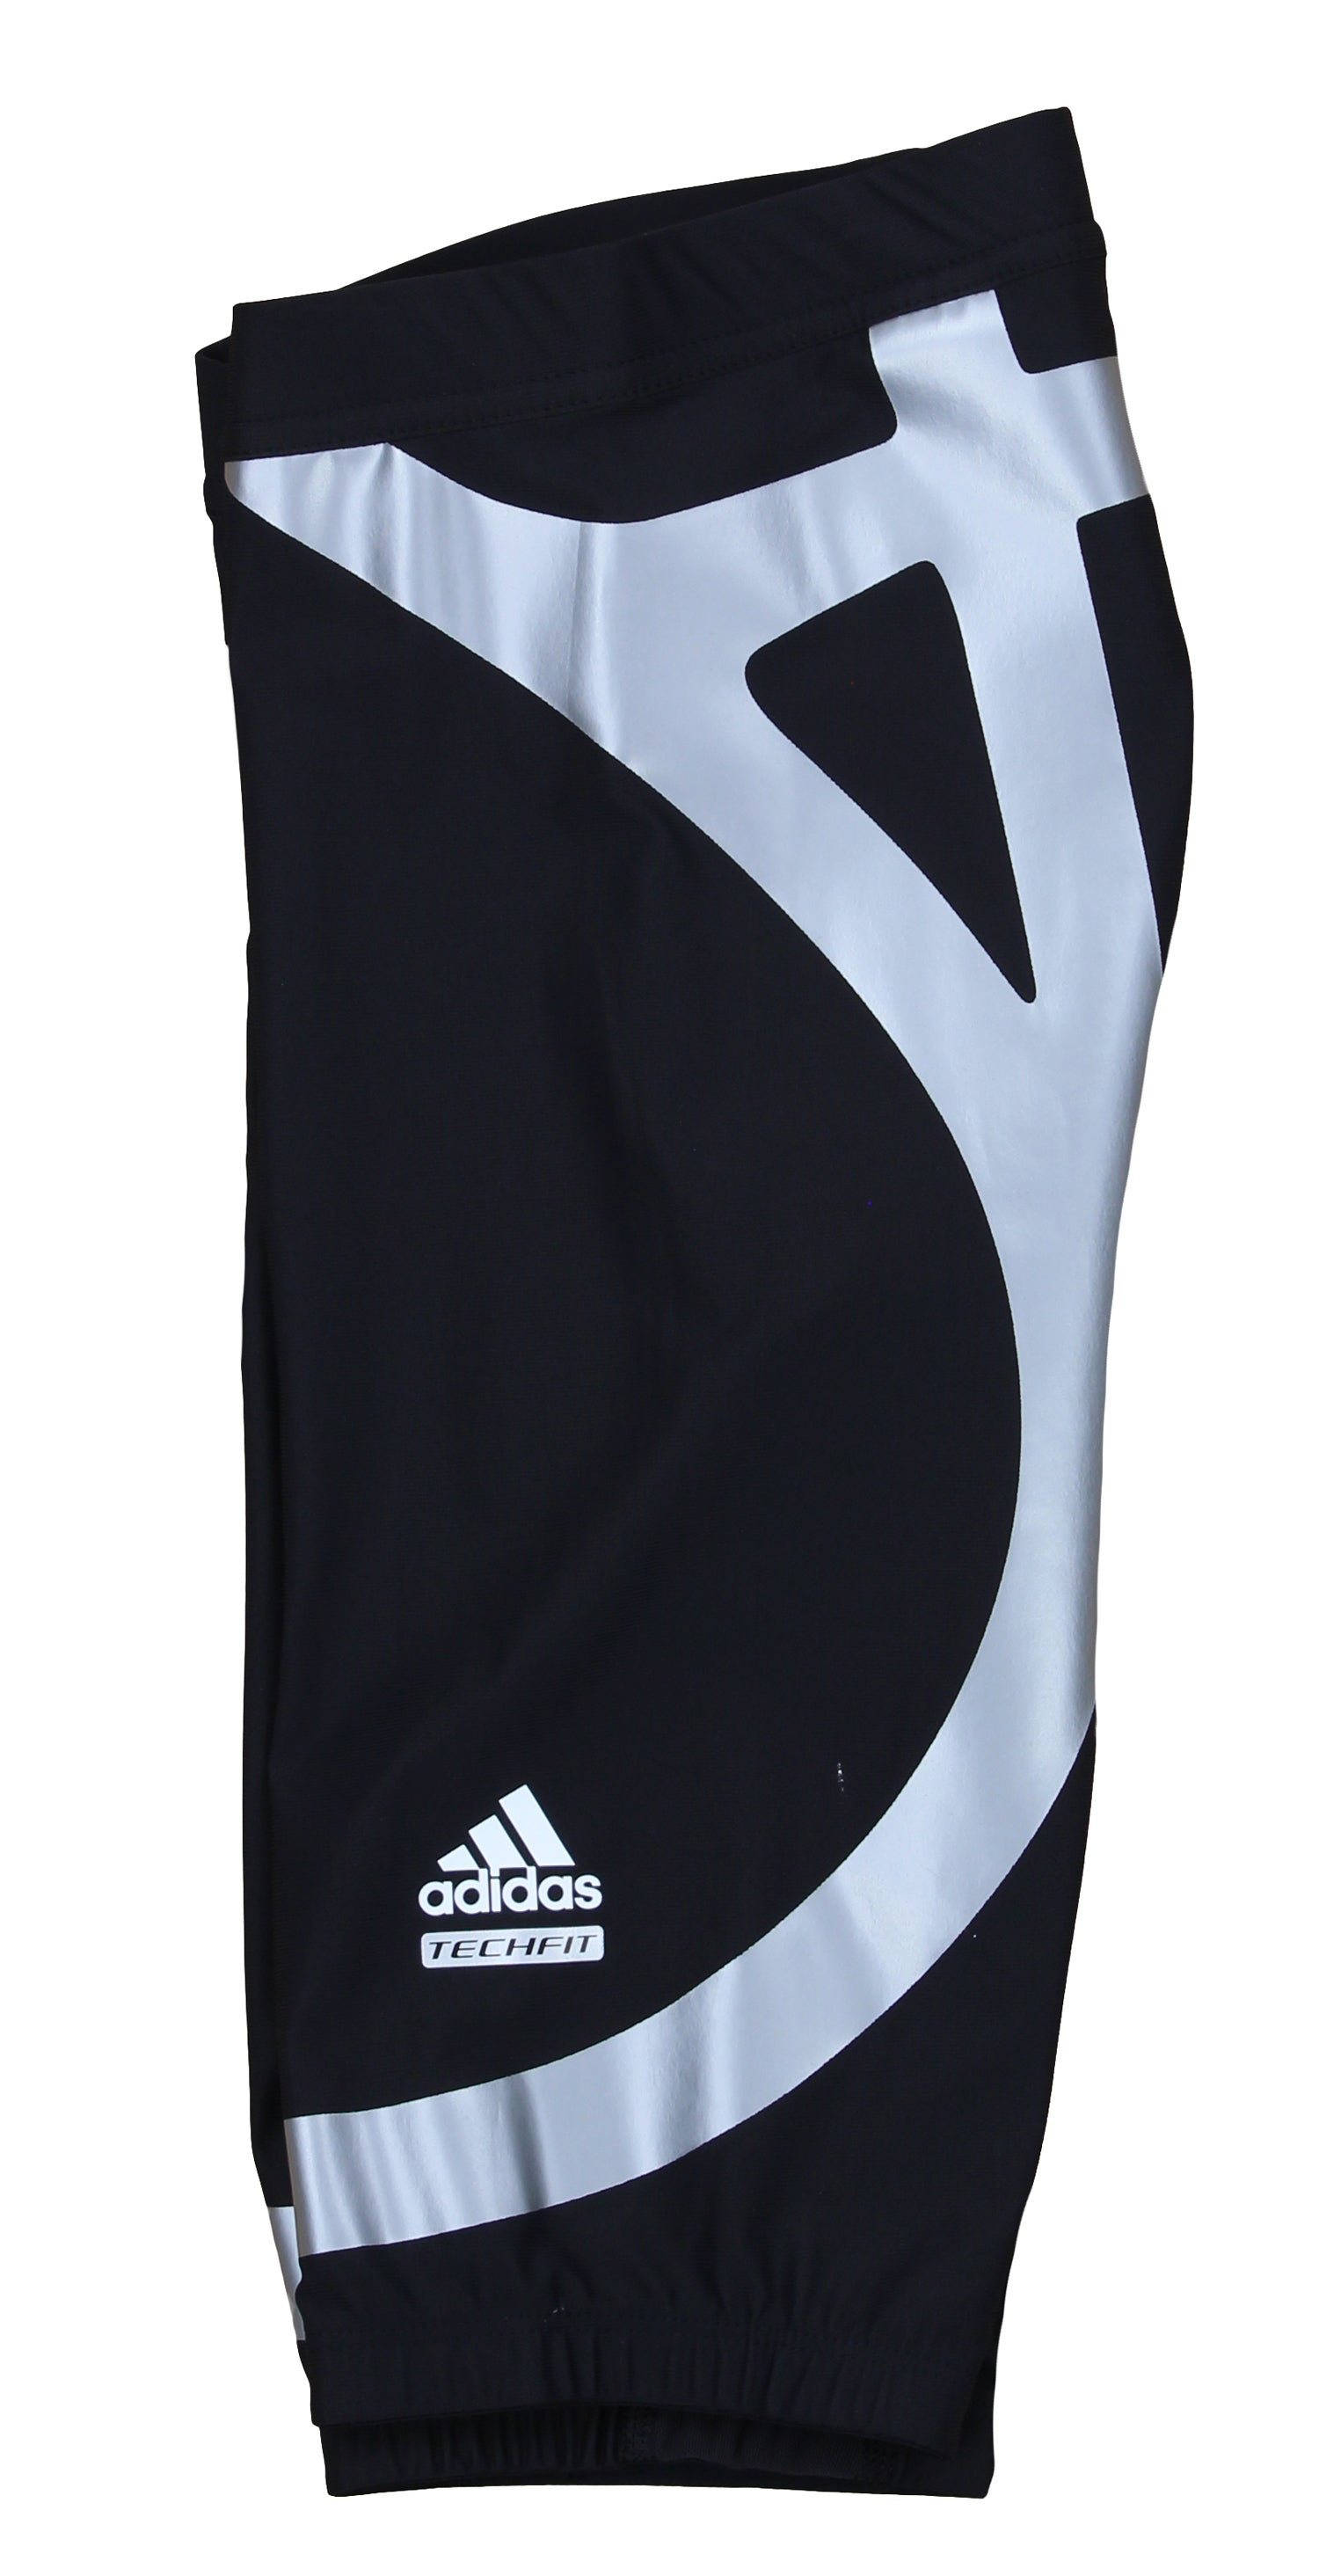 telescopio La risa balcón  Adidas Men's Tight Techfit Powerweb Compression Shorts – Fanletic